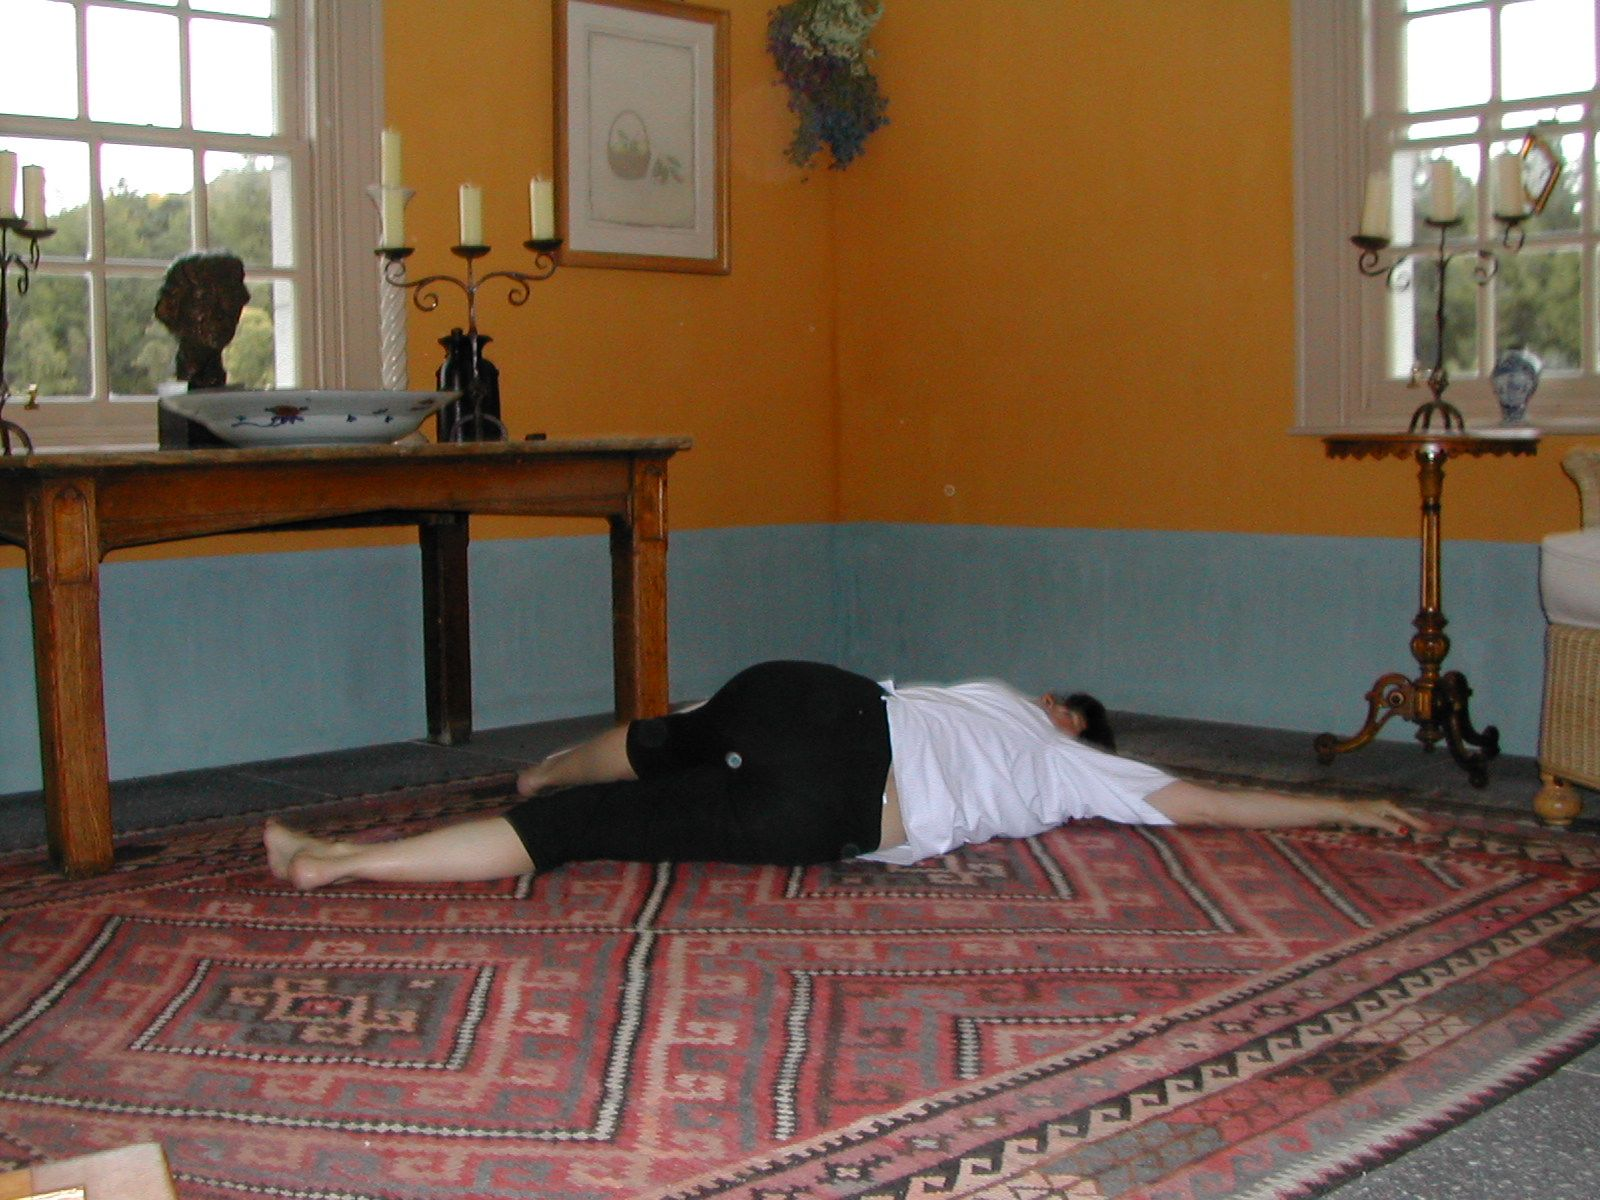 Advanced Sciatic Nerve Stretch 2 is part of exercise 4 in Sarah Key's list of the best yoga for lower back pain